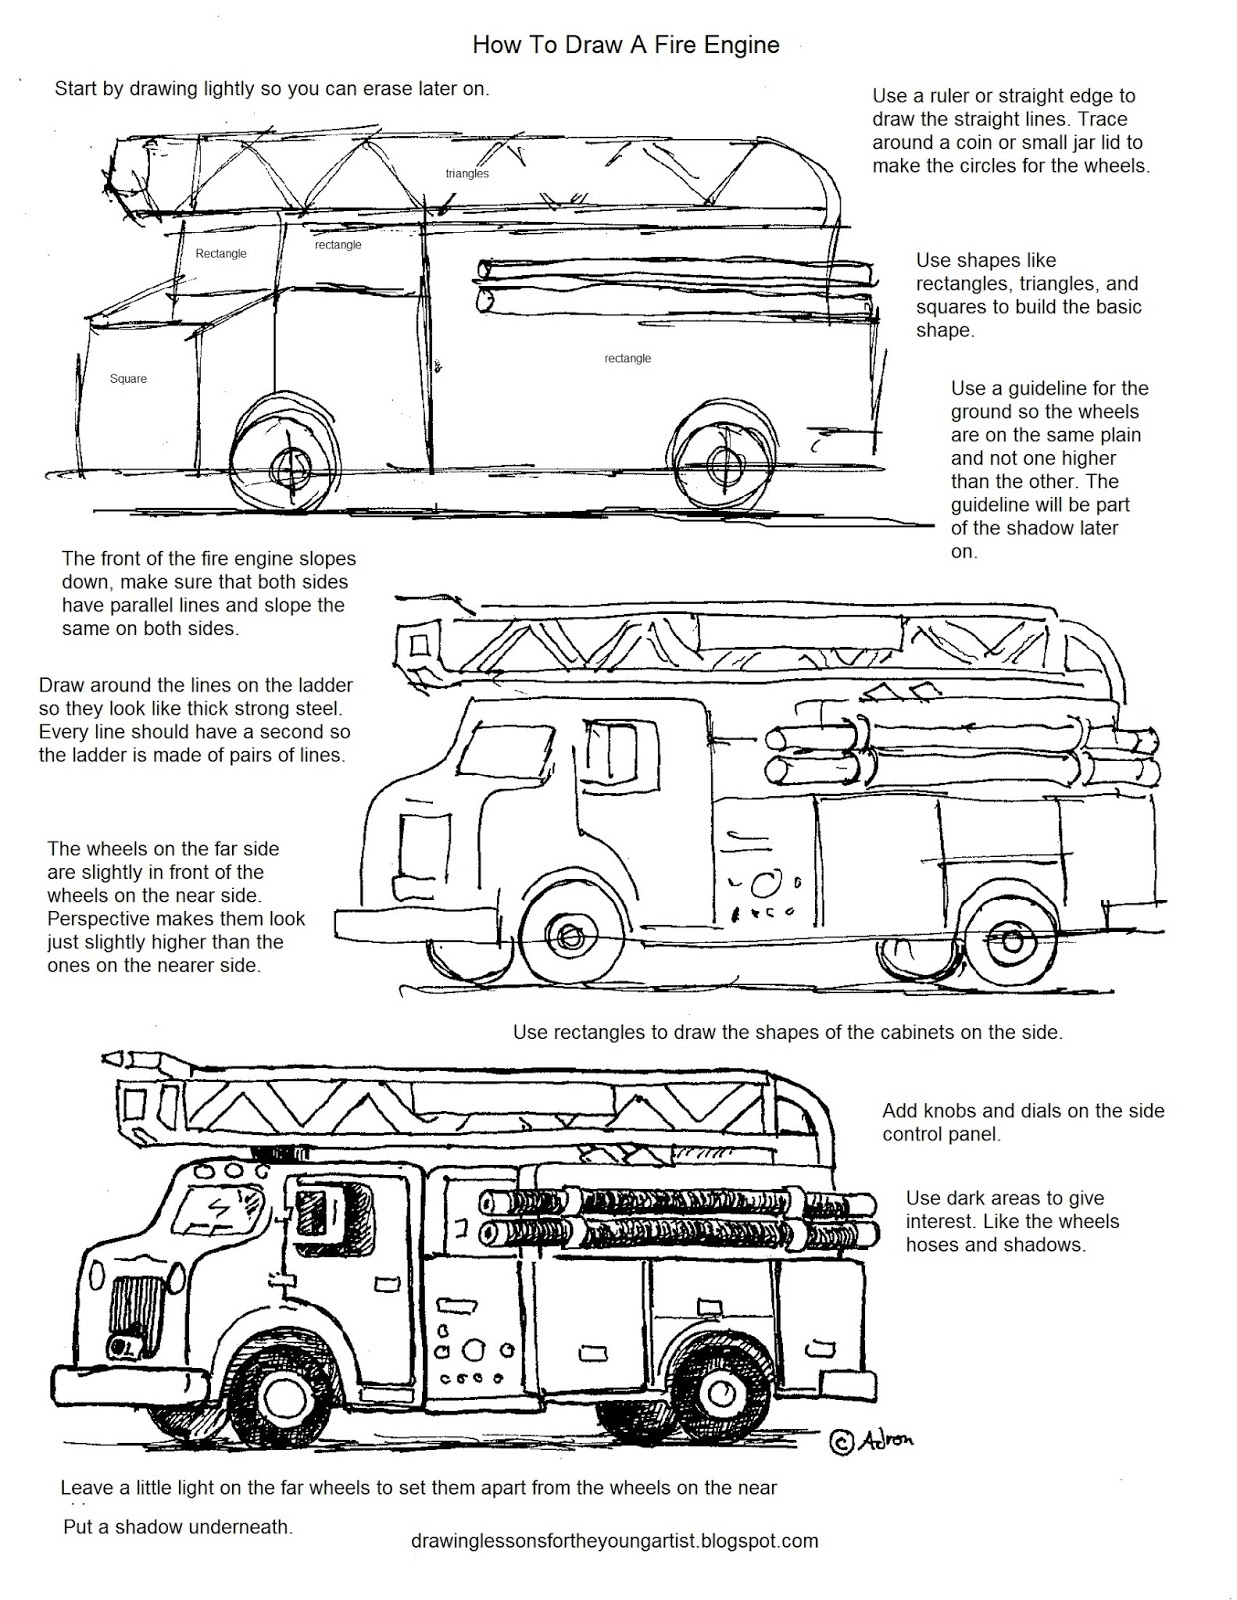 How To Draw Worksheets For The Young Artist How To Draw A Fire Engine Free Printable Worksheet